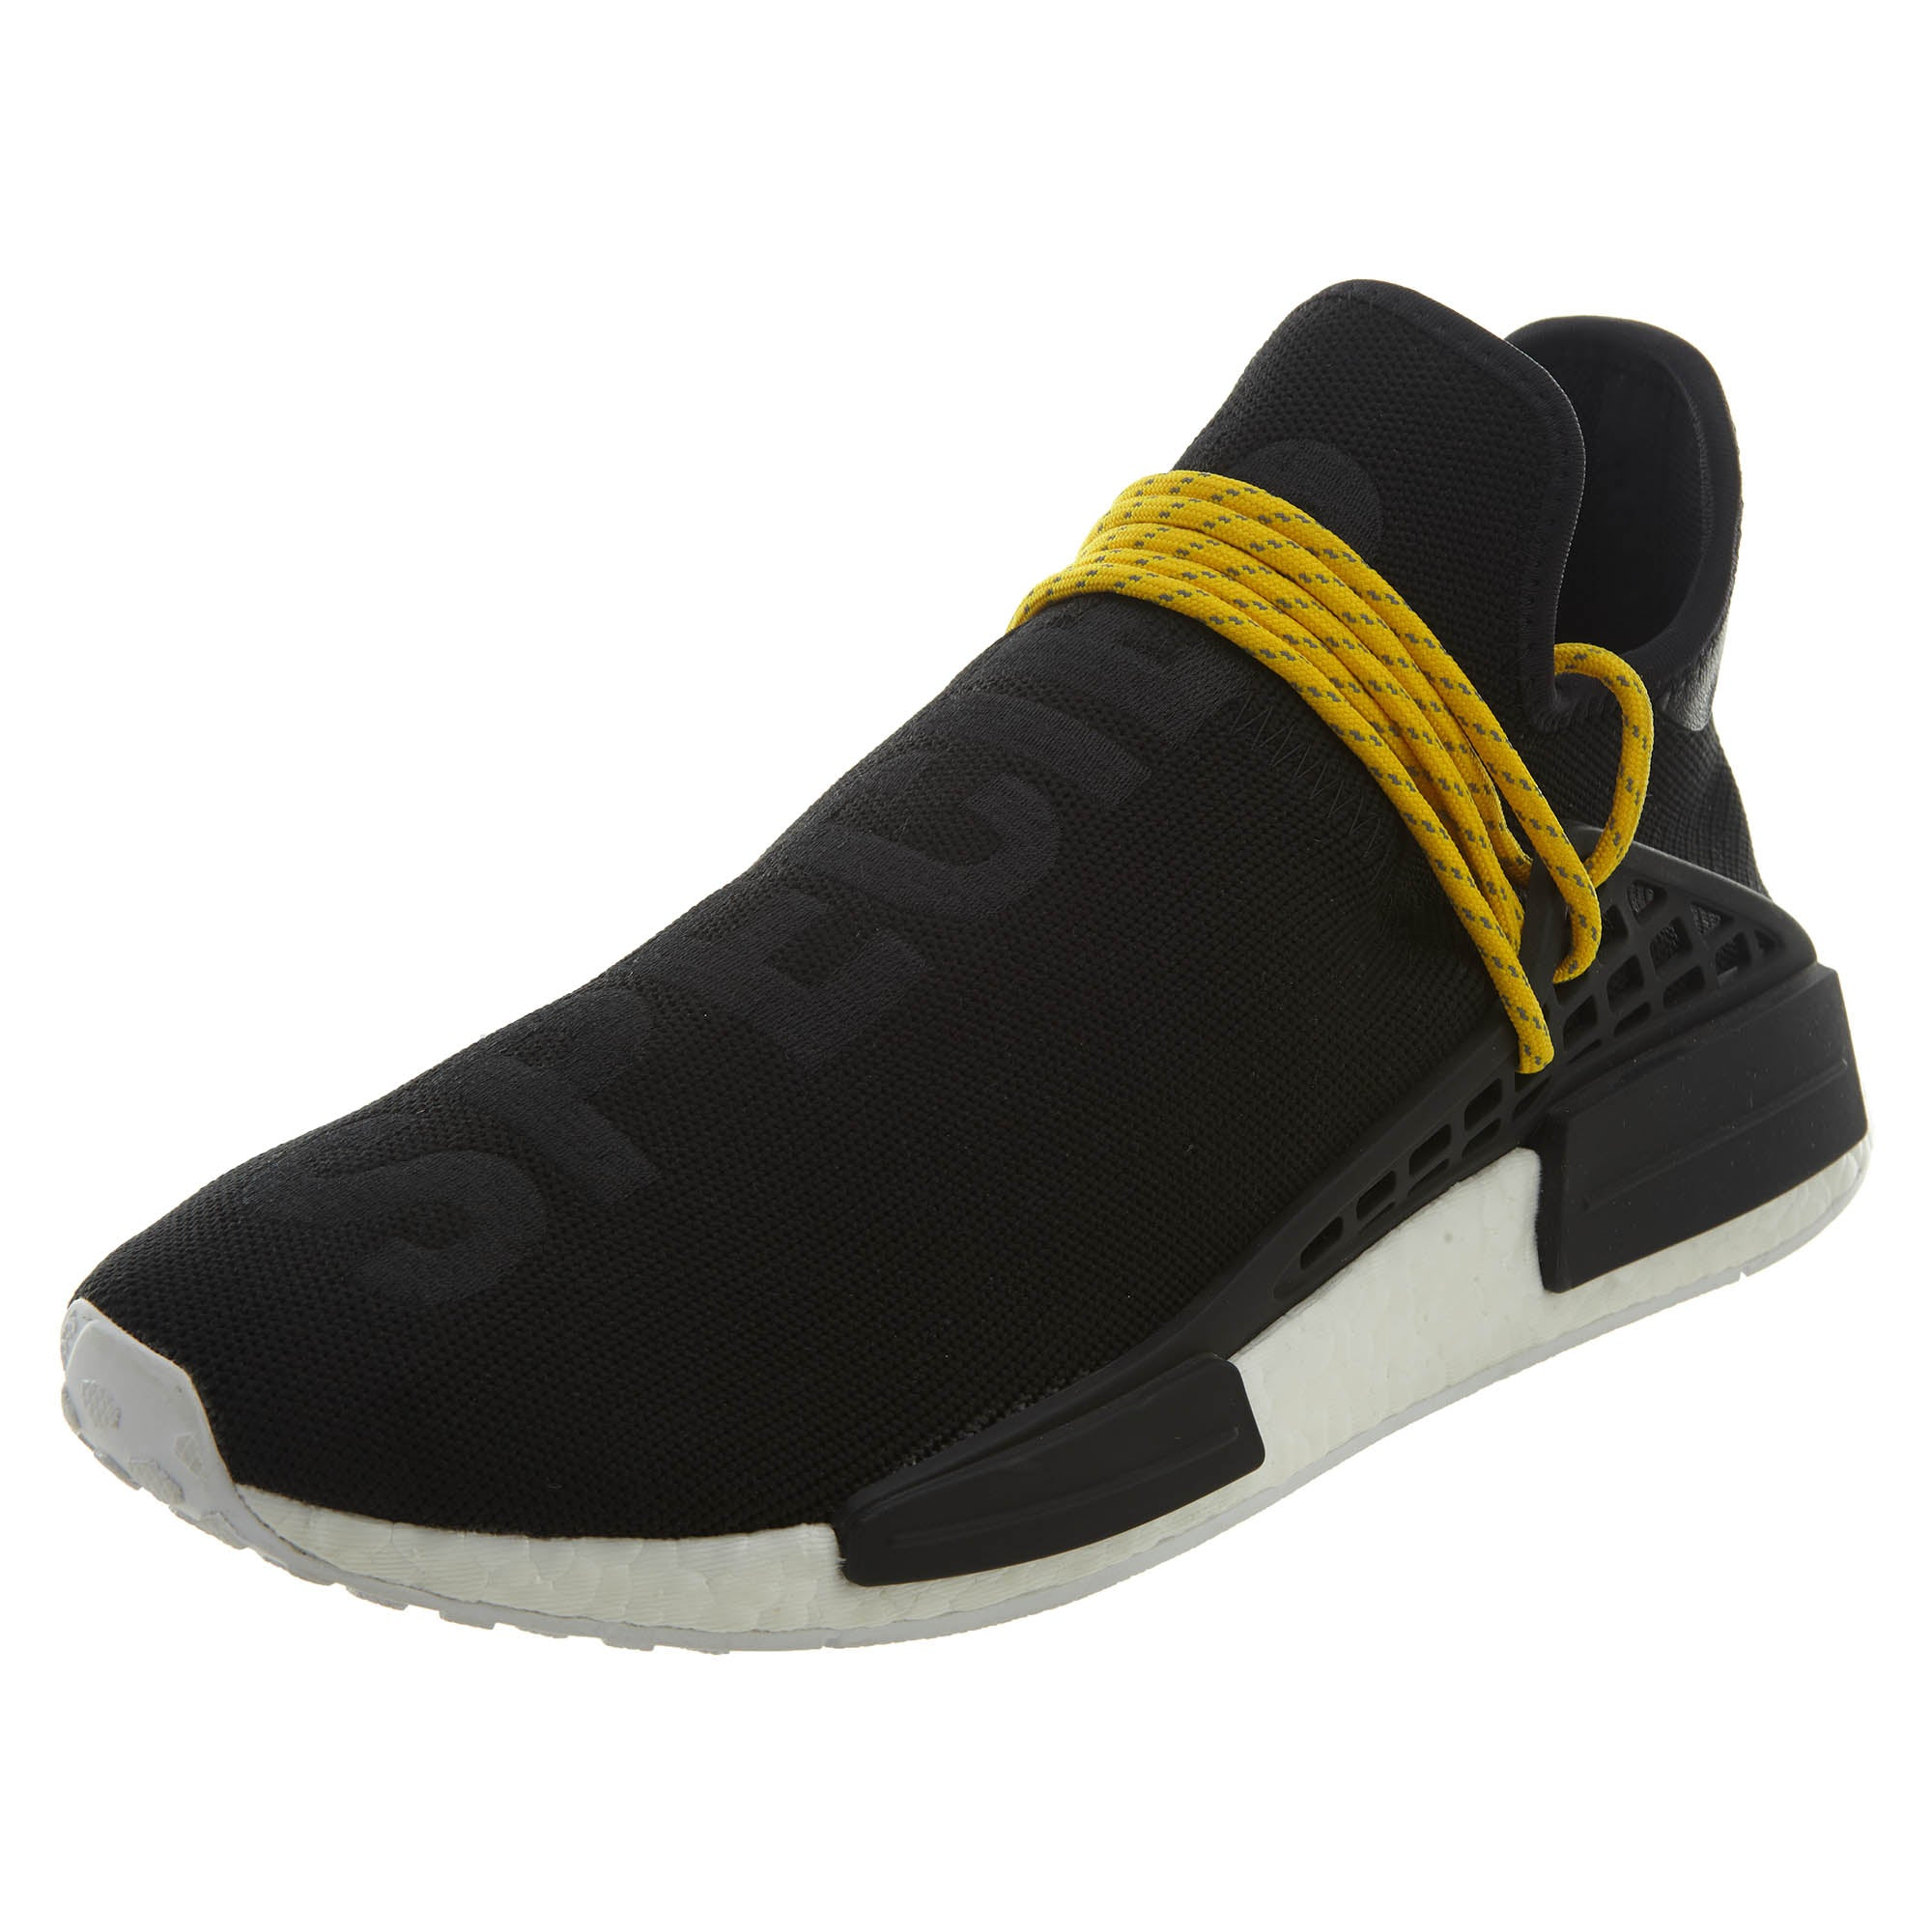 808fd90ed Adidas Pw Human Race Nmd Mens Style   Bb3068 – TheEagleShoes